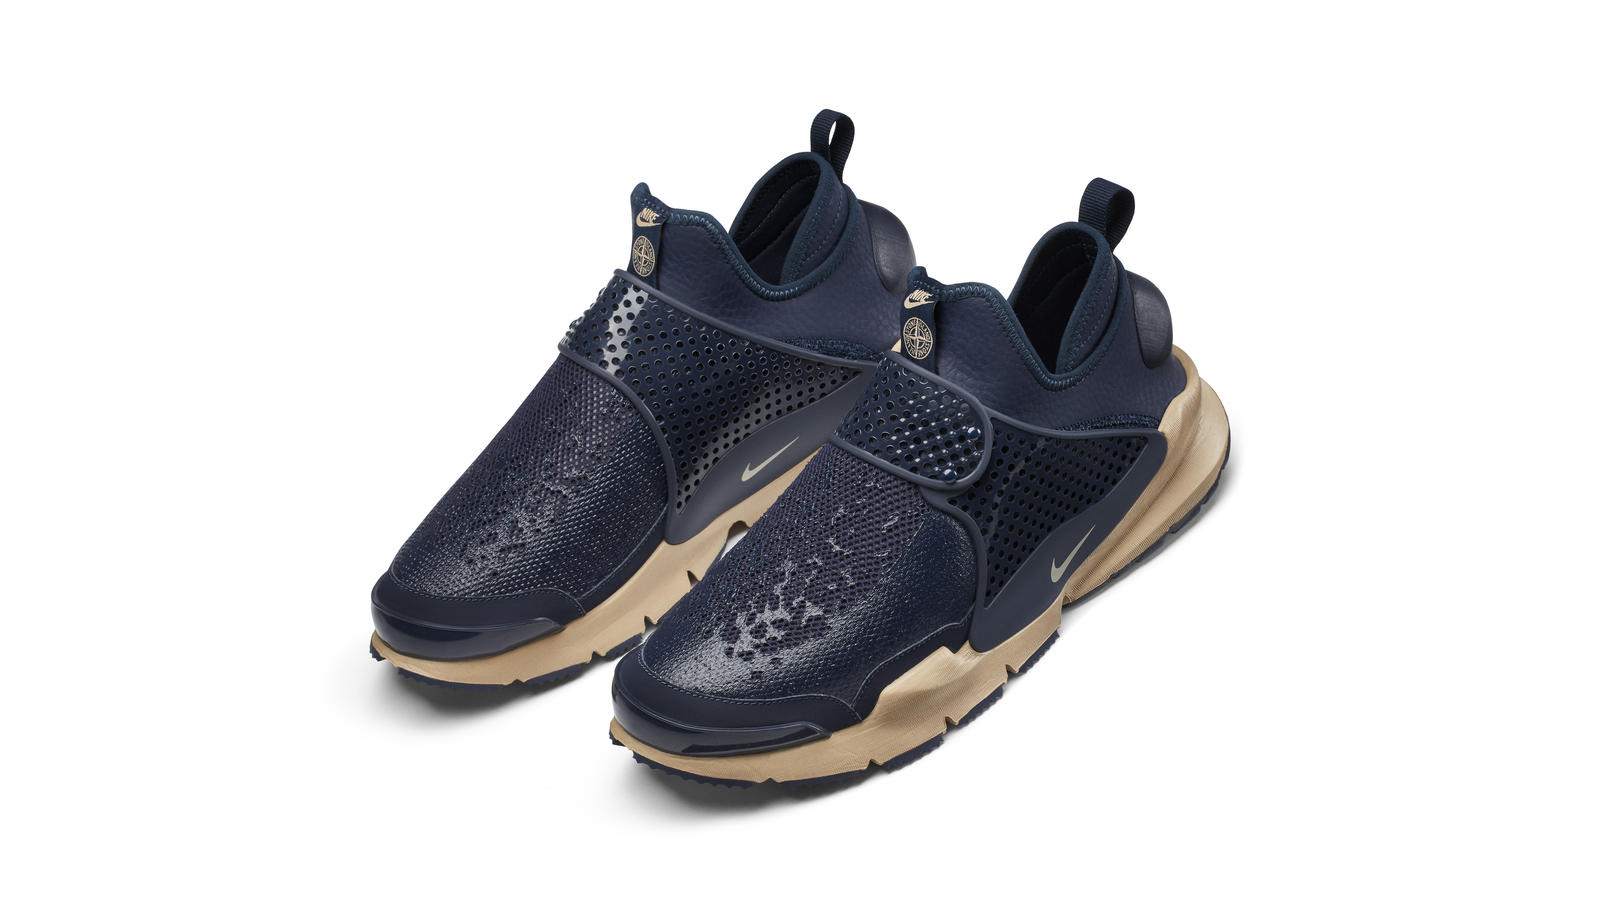 newest cb507 4577d The NikeLab Sock Dart Mid x Stone Island - Nike News